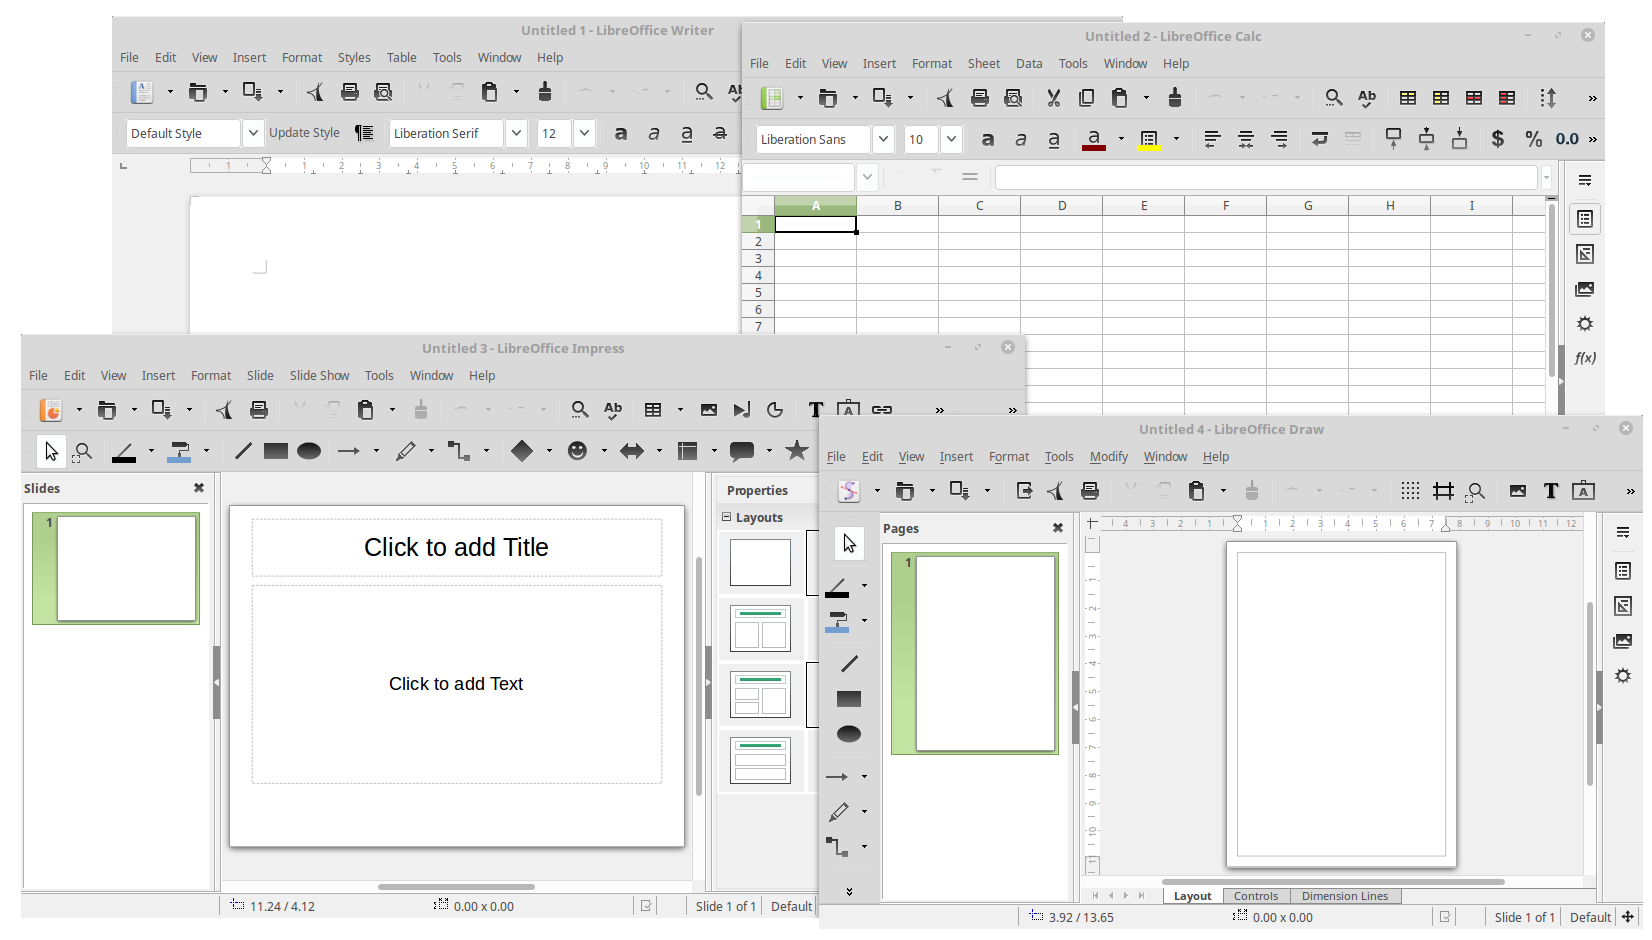 File:LibreOffice Writer, Calc, Impress and Draw png - Wikipedia